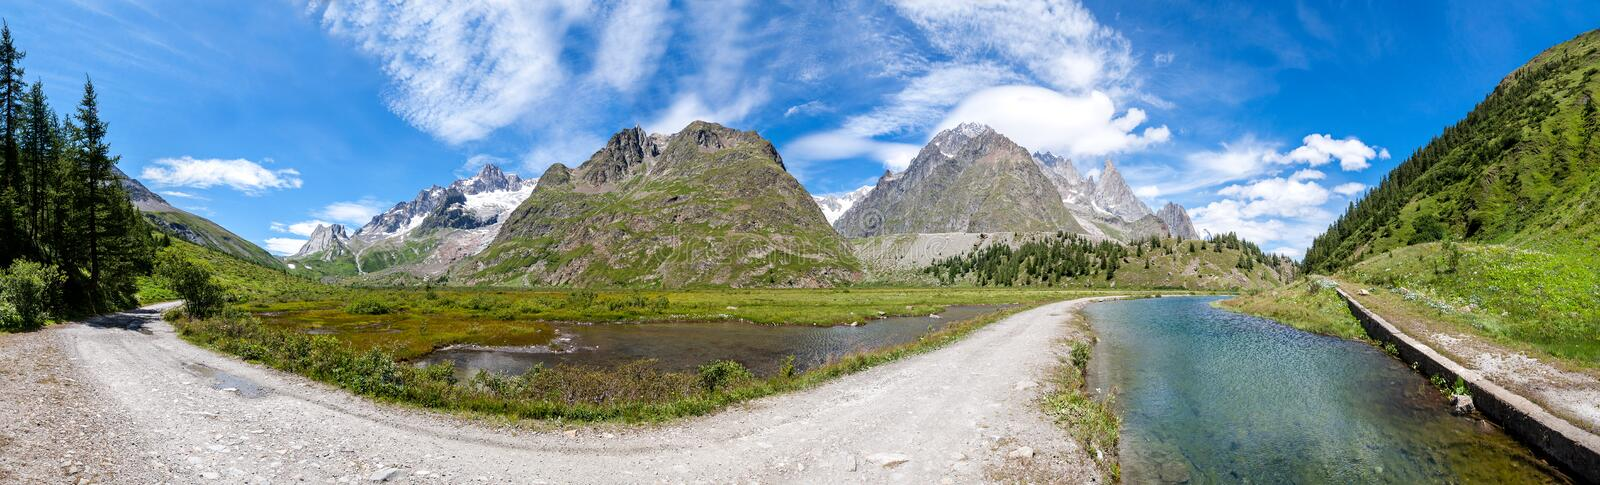 Download Alps, France (by Courmayeur) - Panorama Stock Photo - Image: 26141446